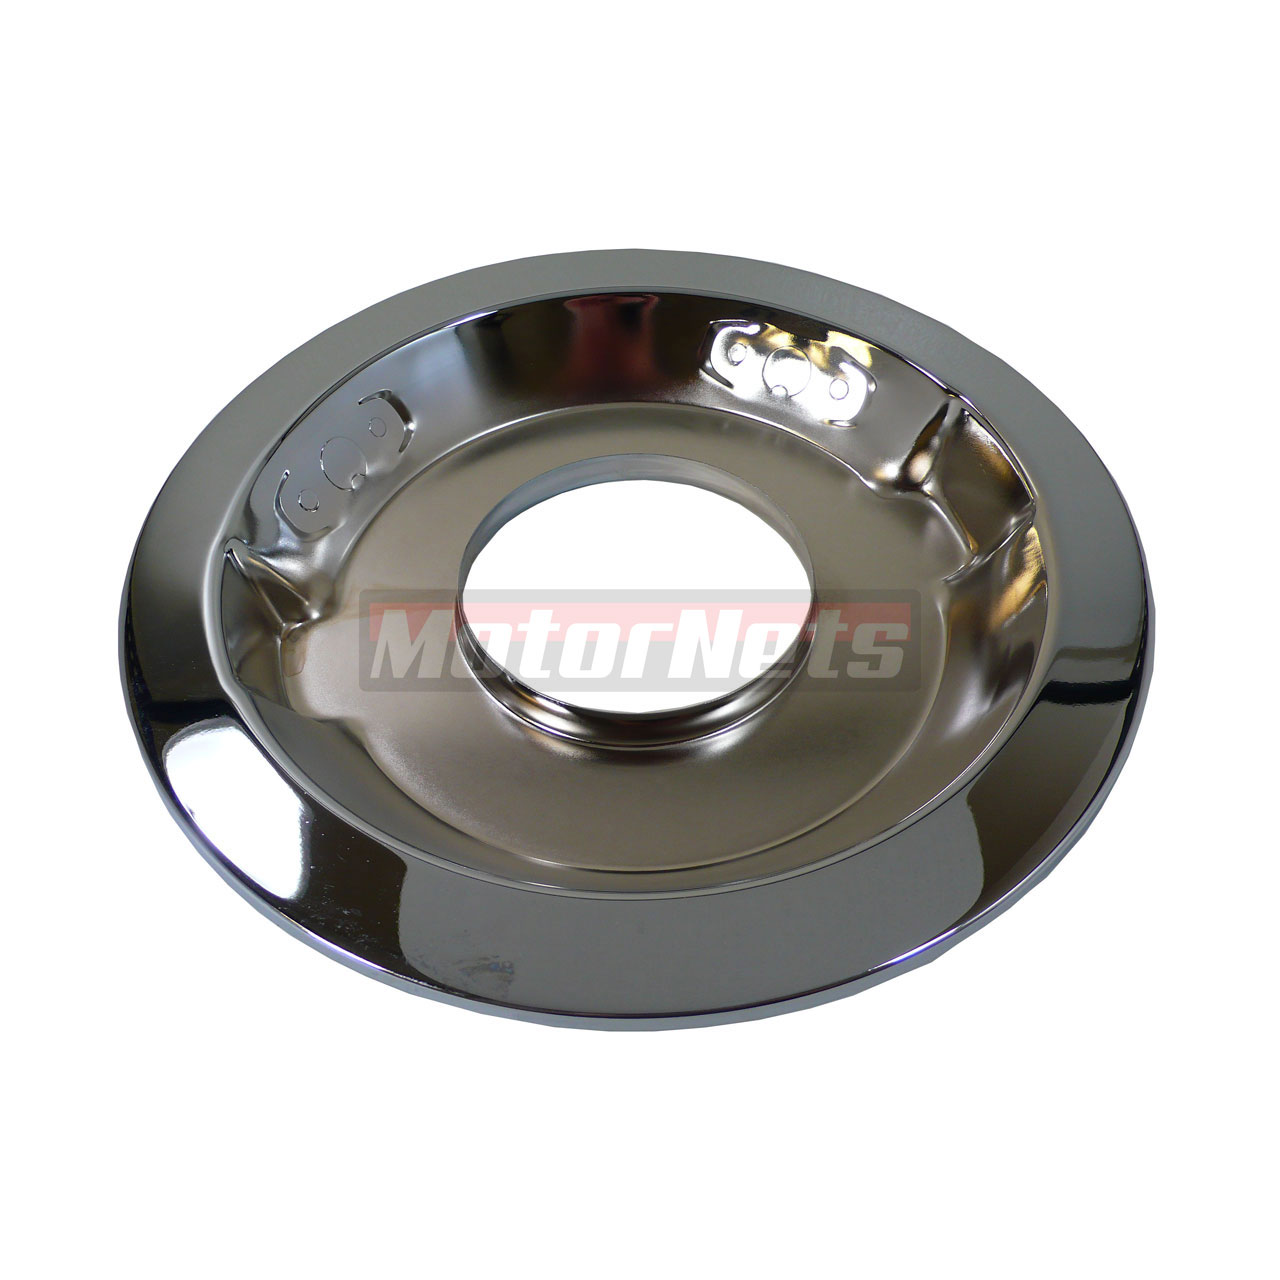 Muscle Car Engine Air Cleaners : Quot round chrome muscle car washable air cleaner recessed